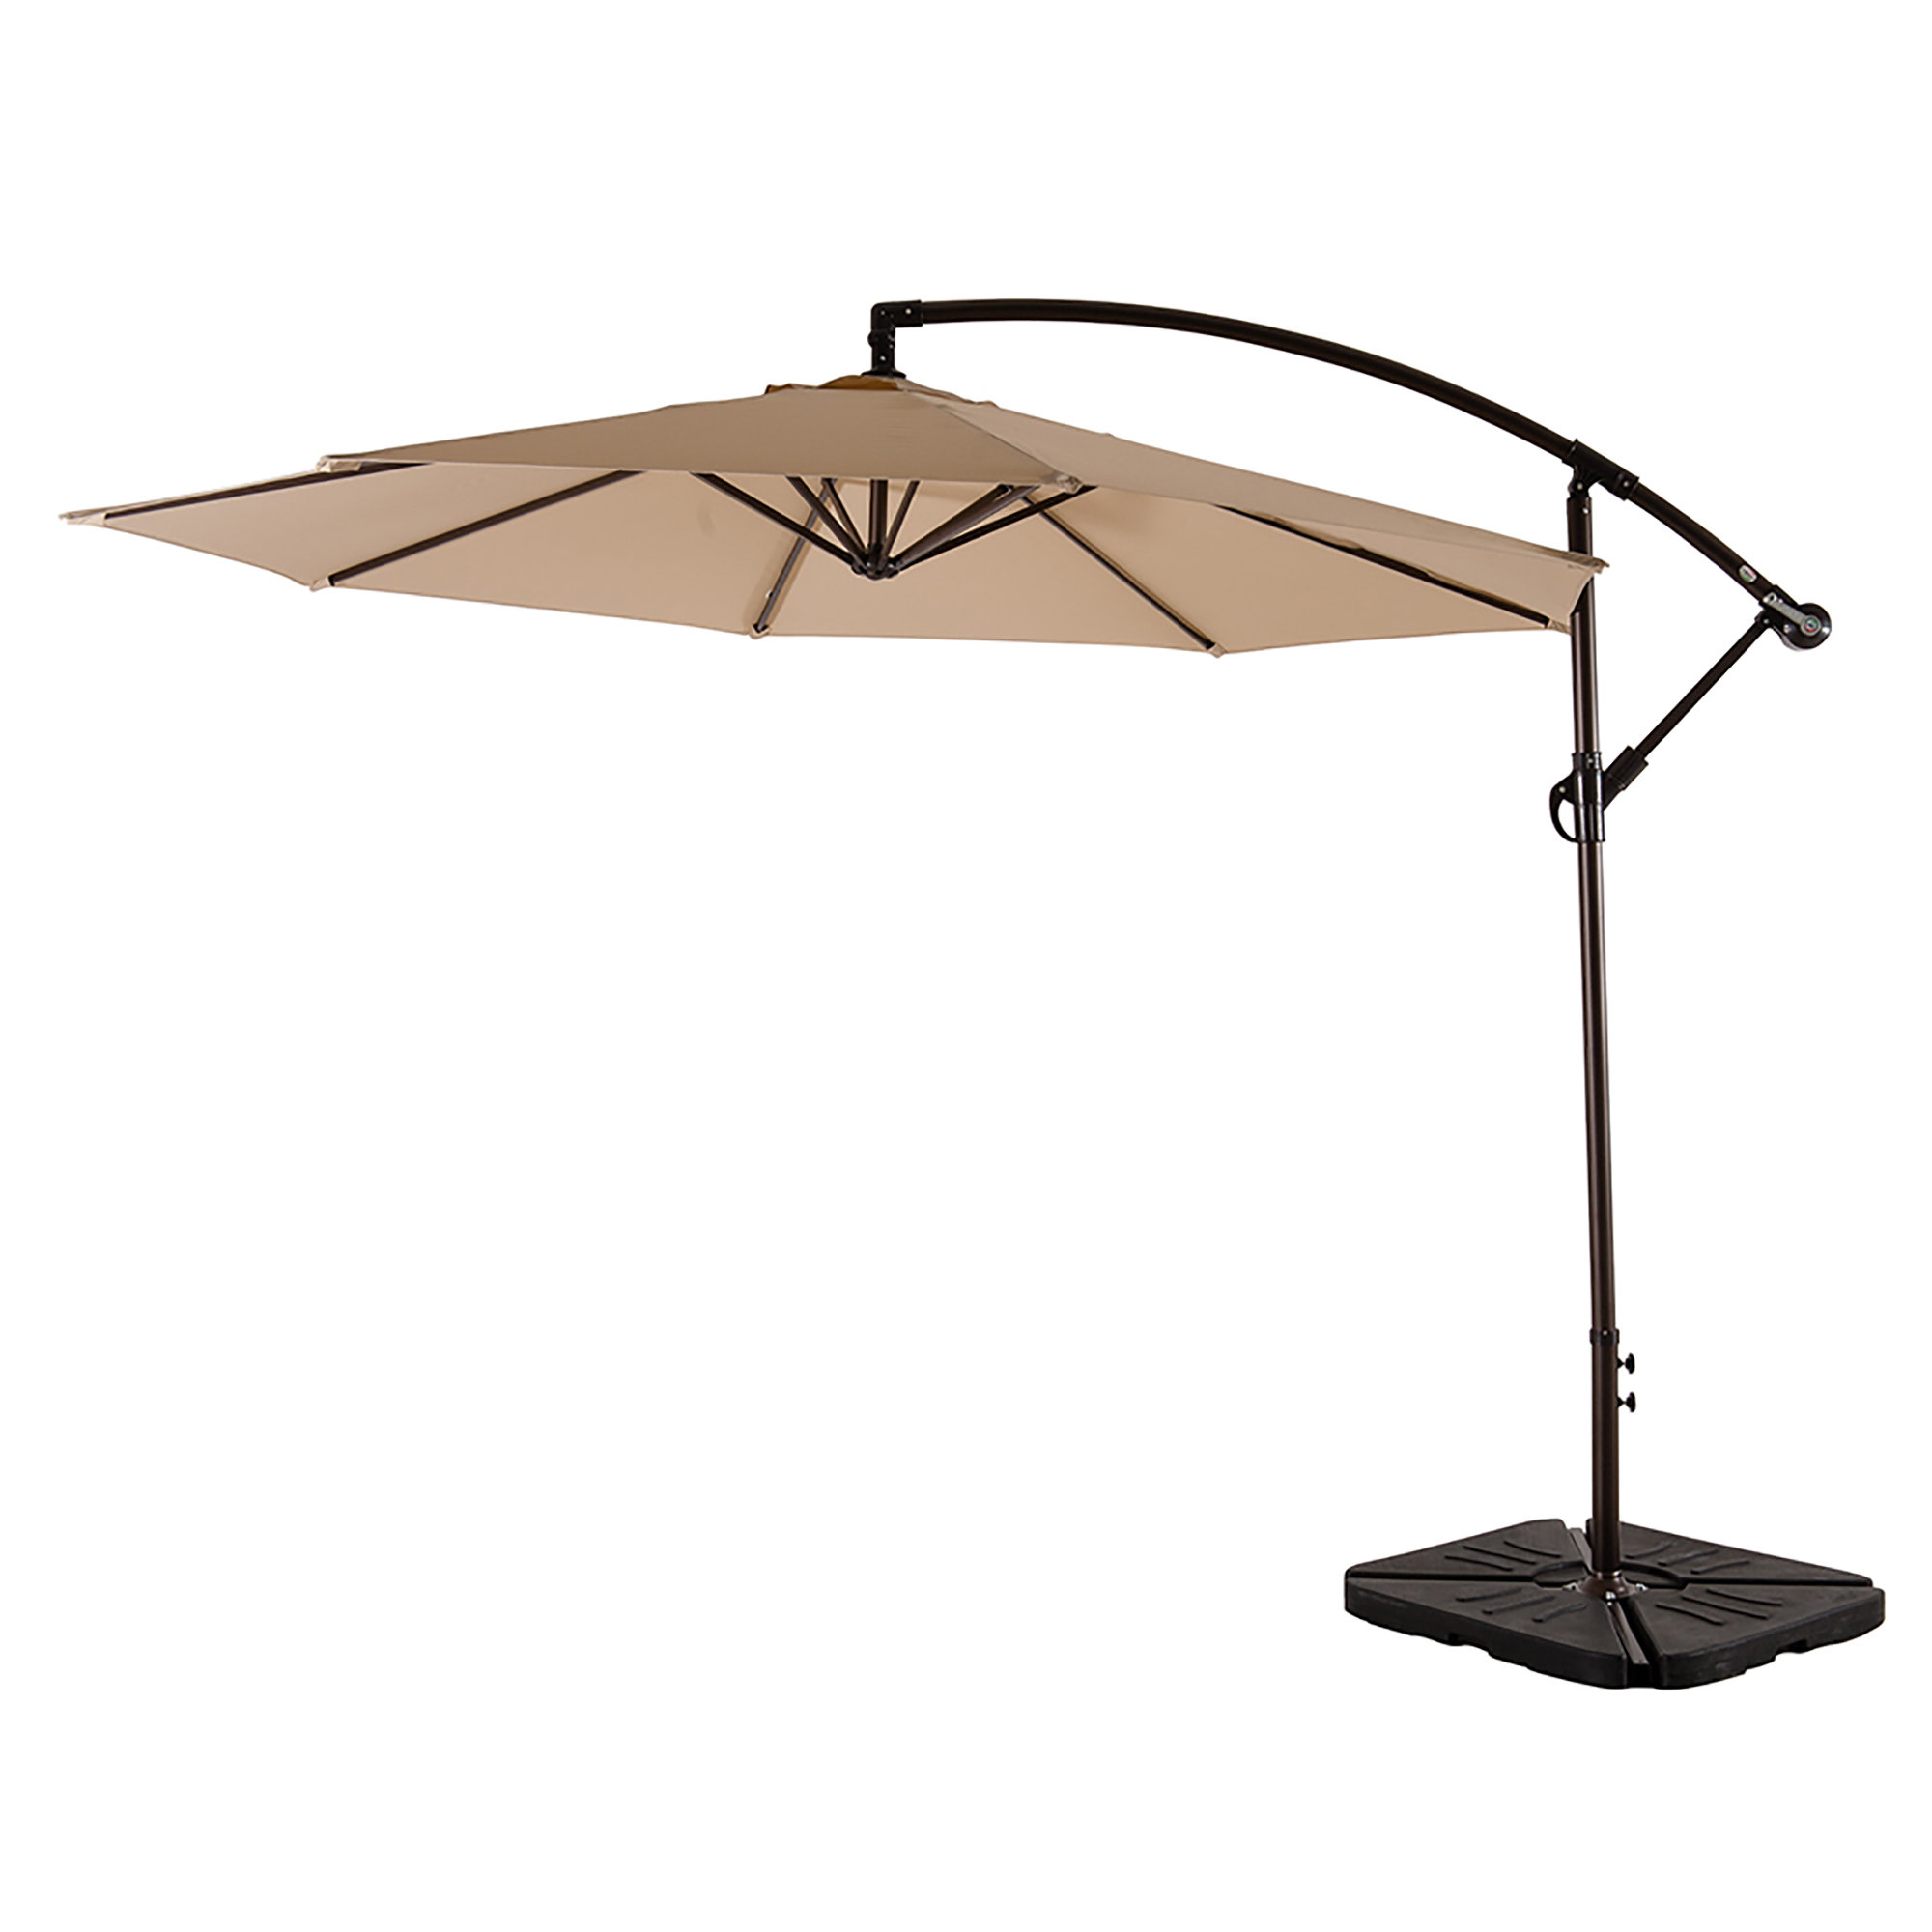 Current Maglione Fabric 4cantilever Umbrellas Within Karr 10' Cantilever Umbrella (View 5 of 20)